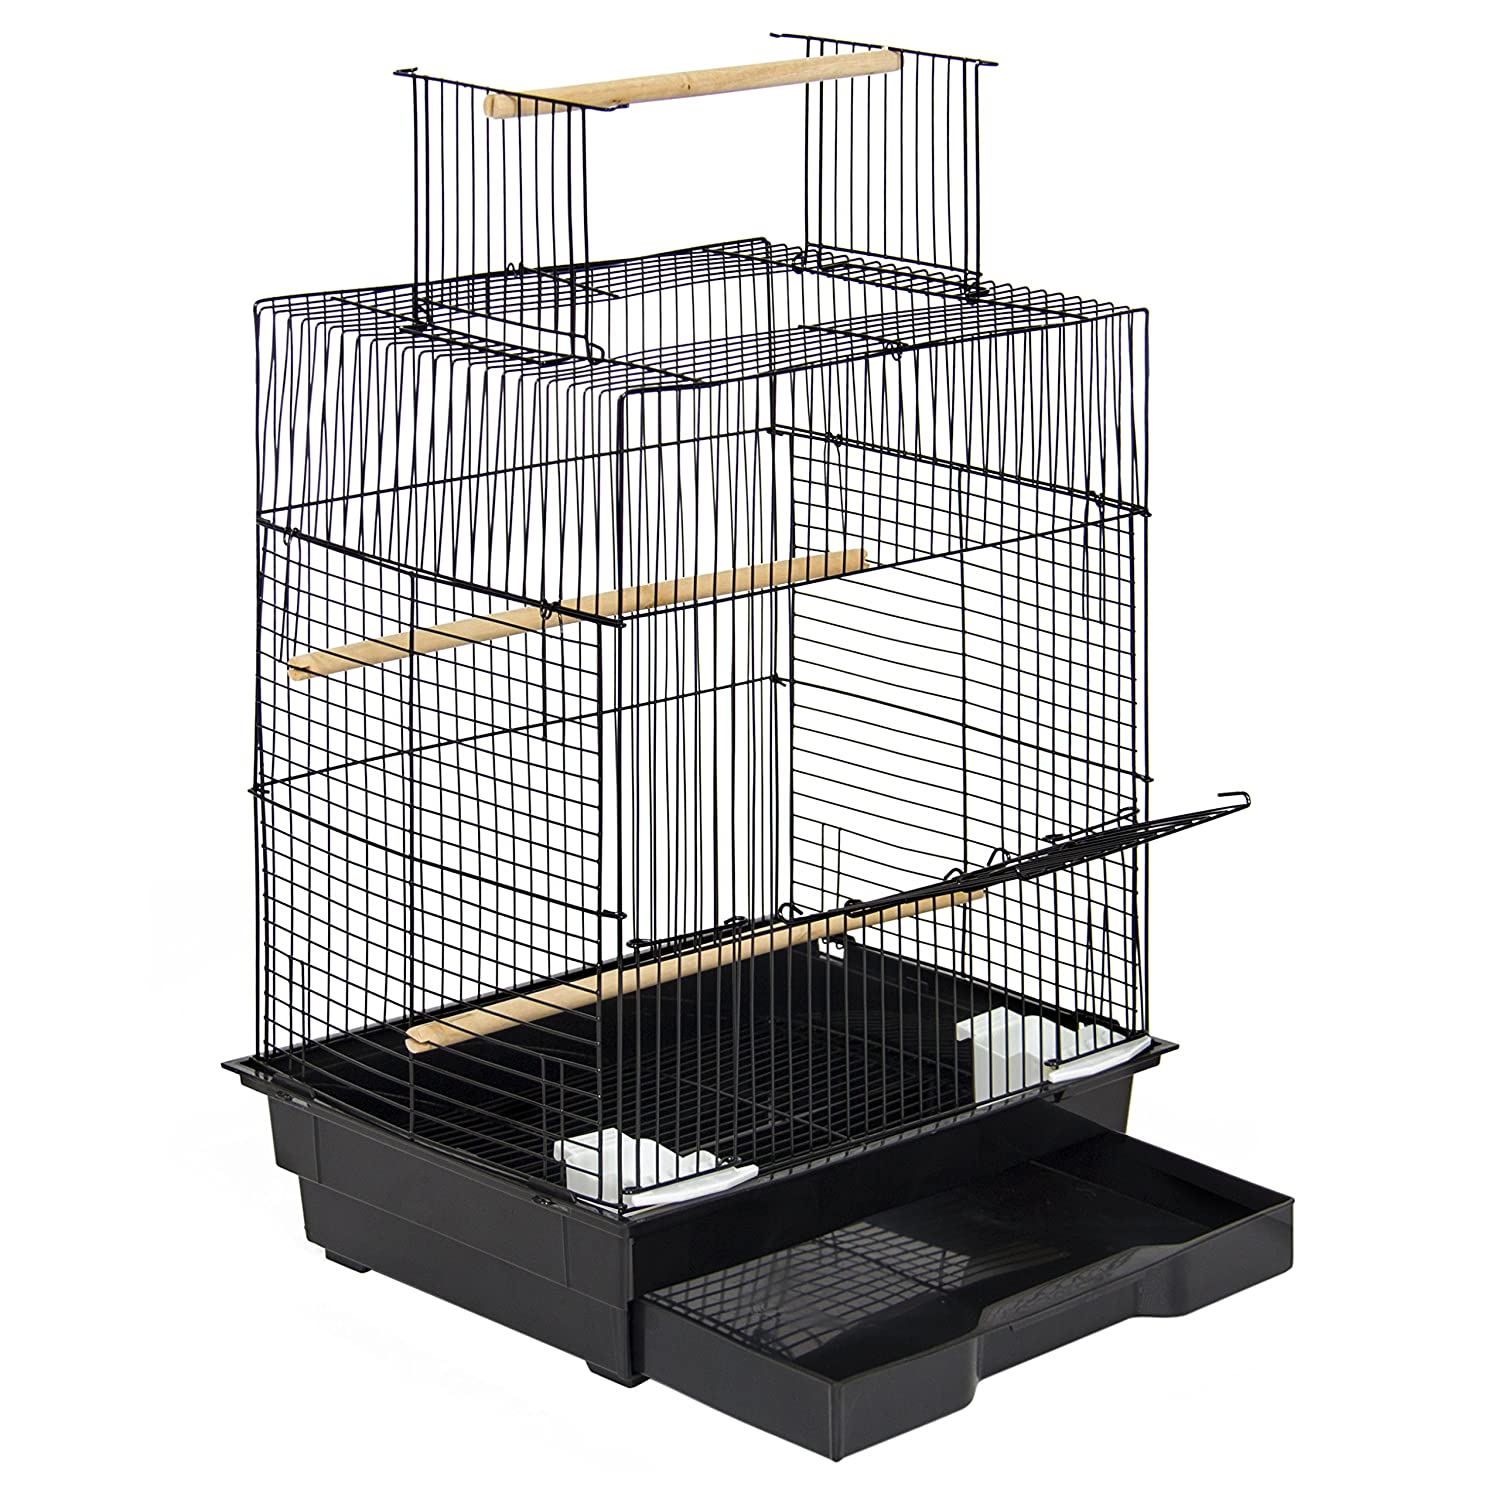 Best Choice Products Pet Supplies 24 Bird Cage W/ Open Play Top- Ideal For Parakeets, Small Birds SKY3083